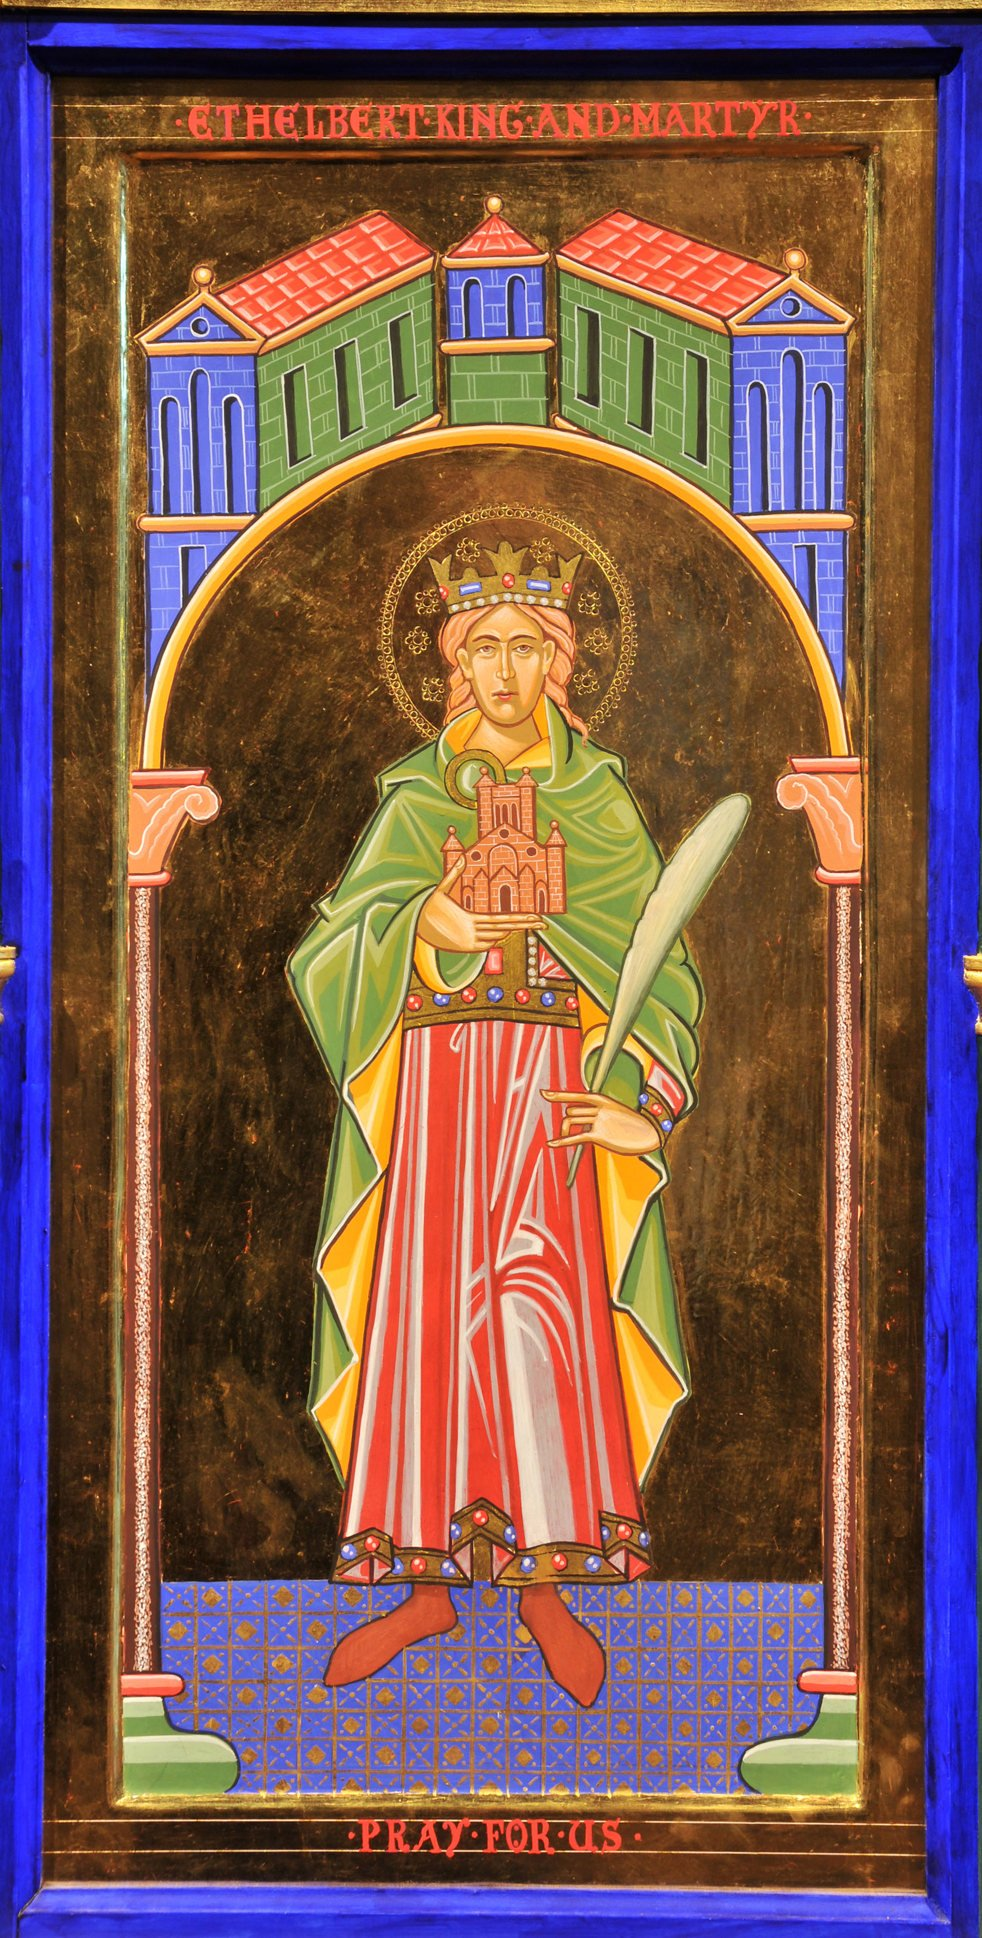 An icon style painting in rich jewel colours with gold embellishment: Ethelbert stands tall with a crown on his head. In his left hand he holds a quill and in the other a building, the cathedral